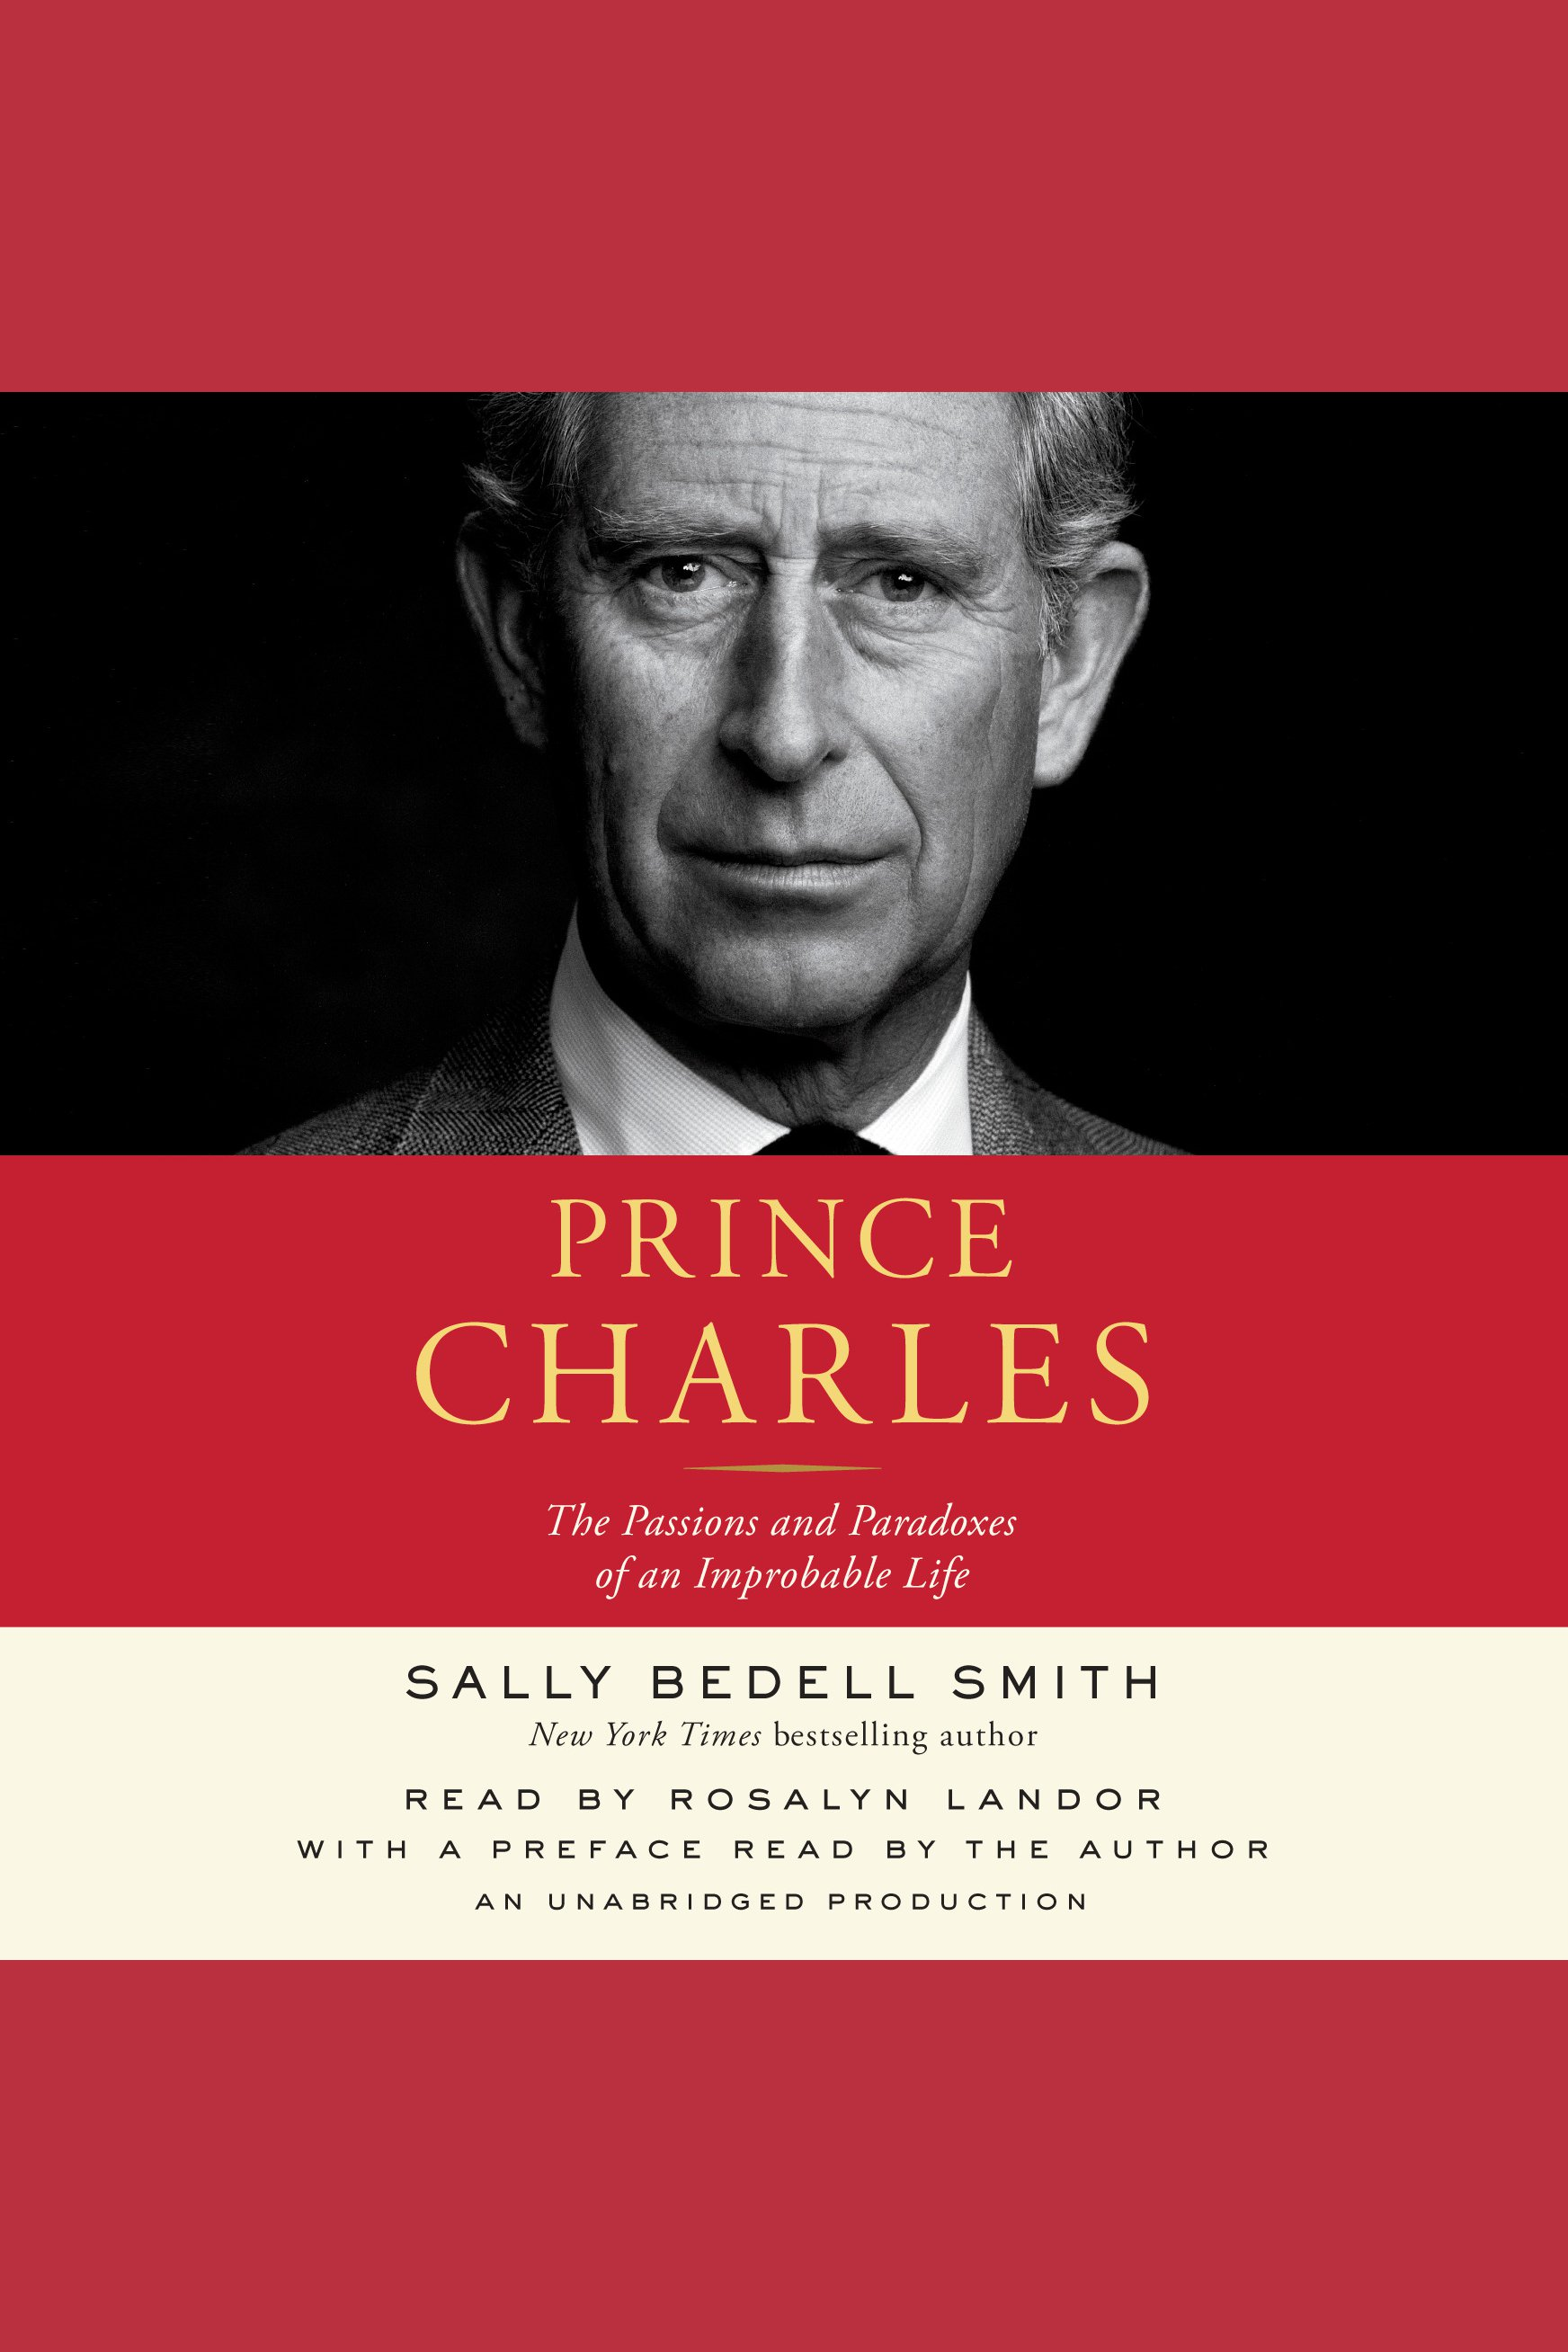 Prince Charles [AUDIO EBOOK] The Passions and Paradoxes of an Improbable Life